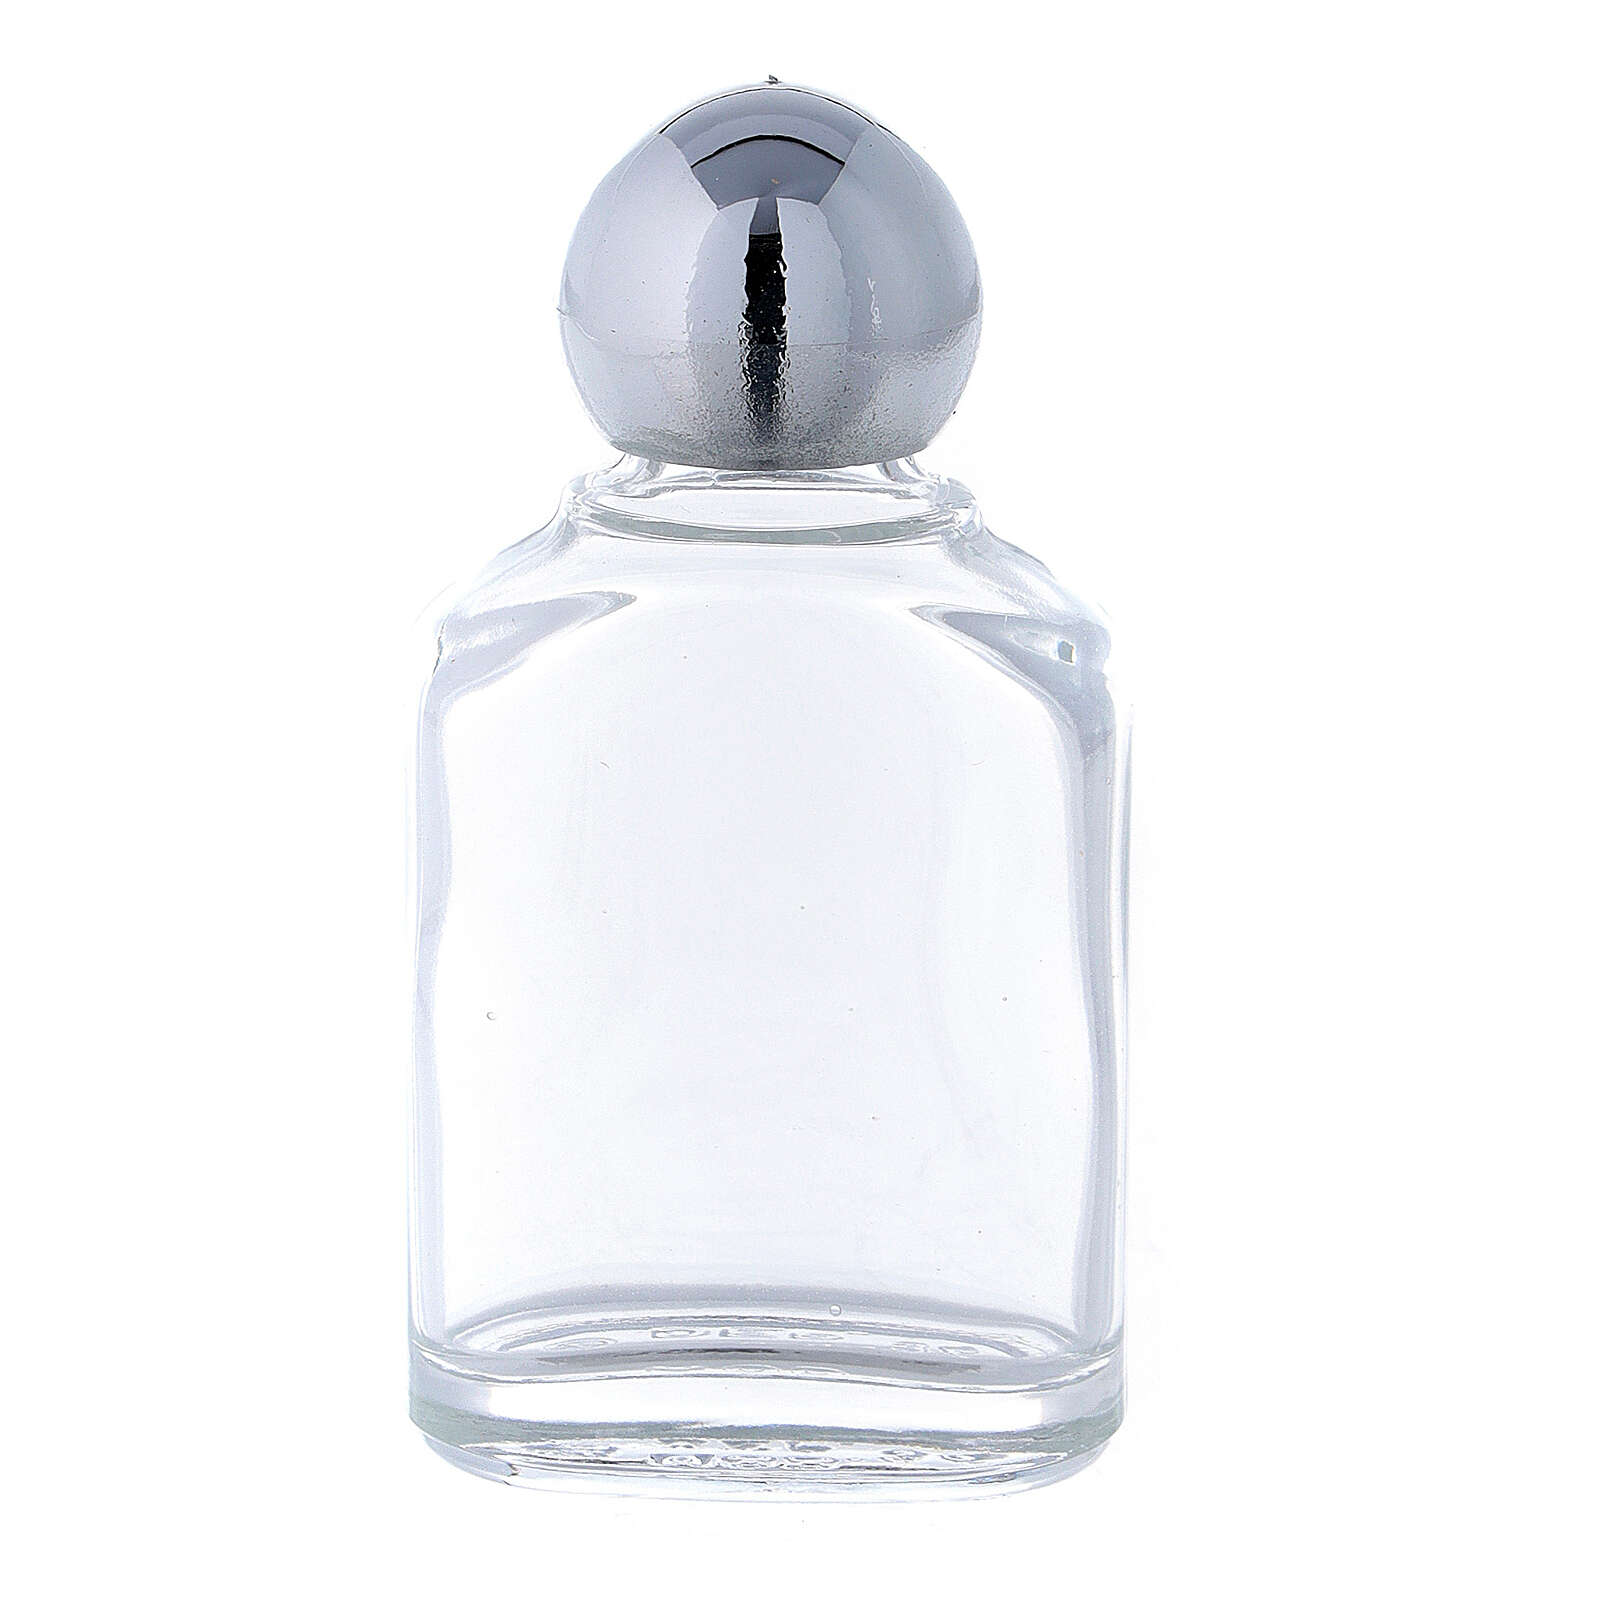 Holy water bottle with 10 ml (50-PIECE PACK) in glass 3